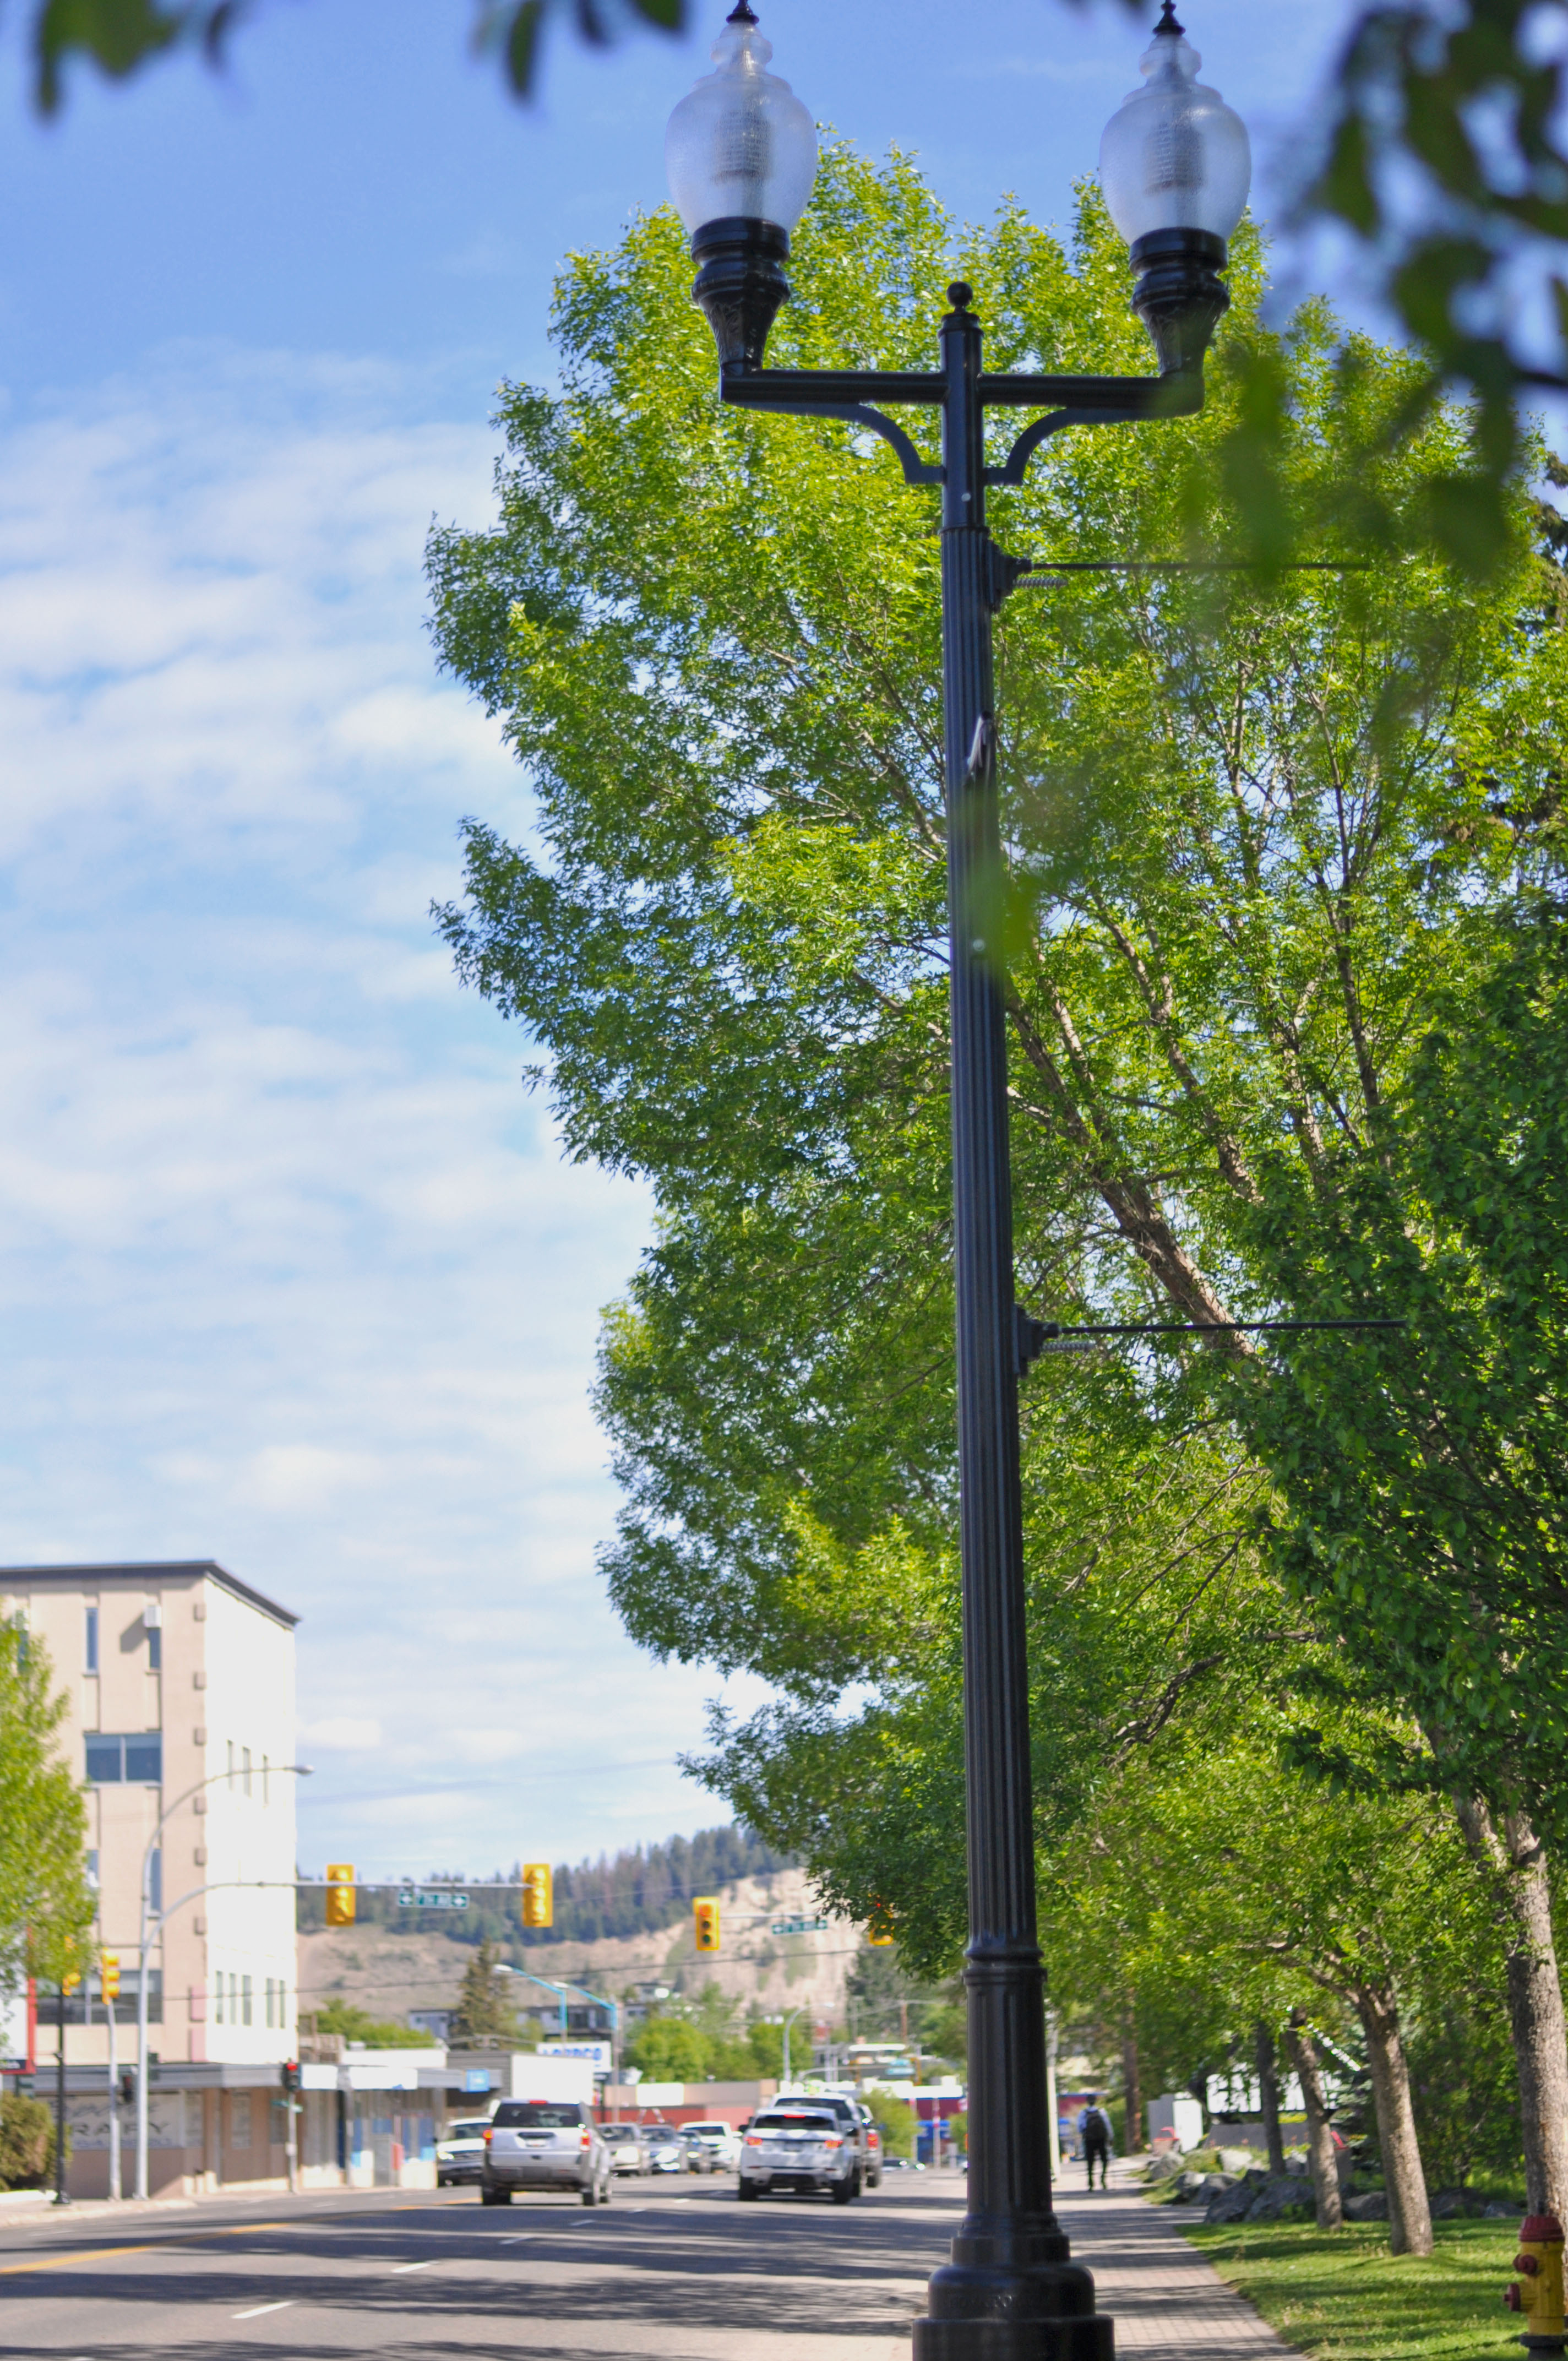 Some of the recently installed decorative streetlight poles with efficient LED lights along Victoria Avenue heading towards downtown.